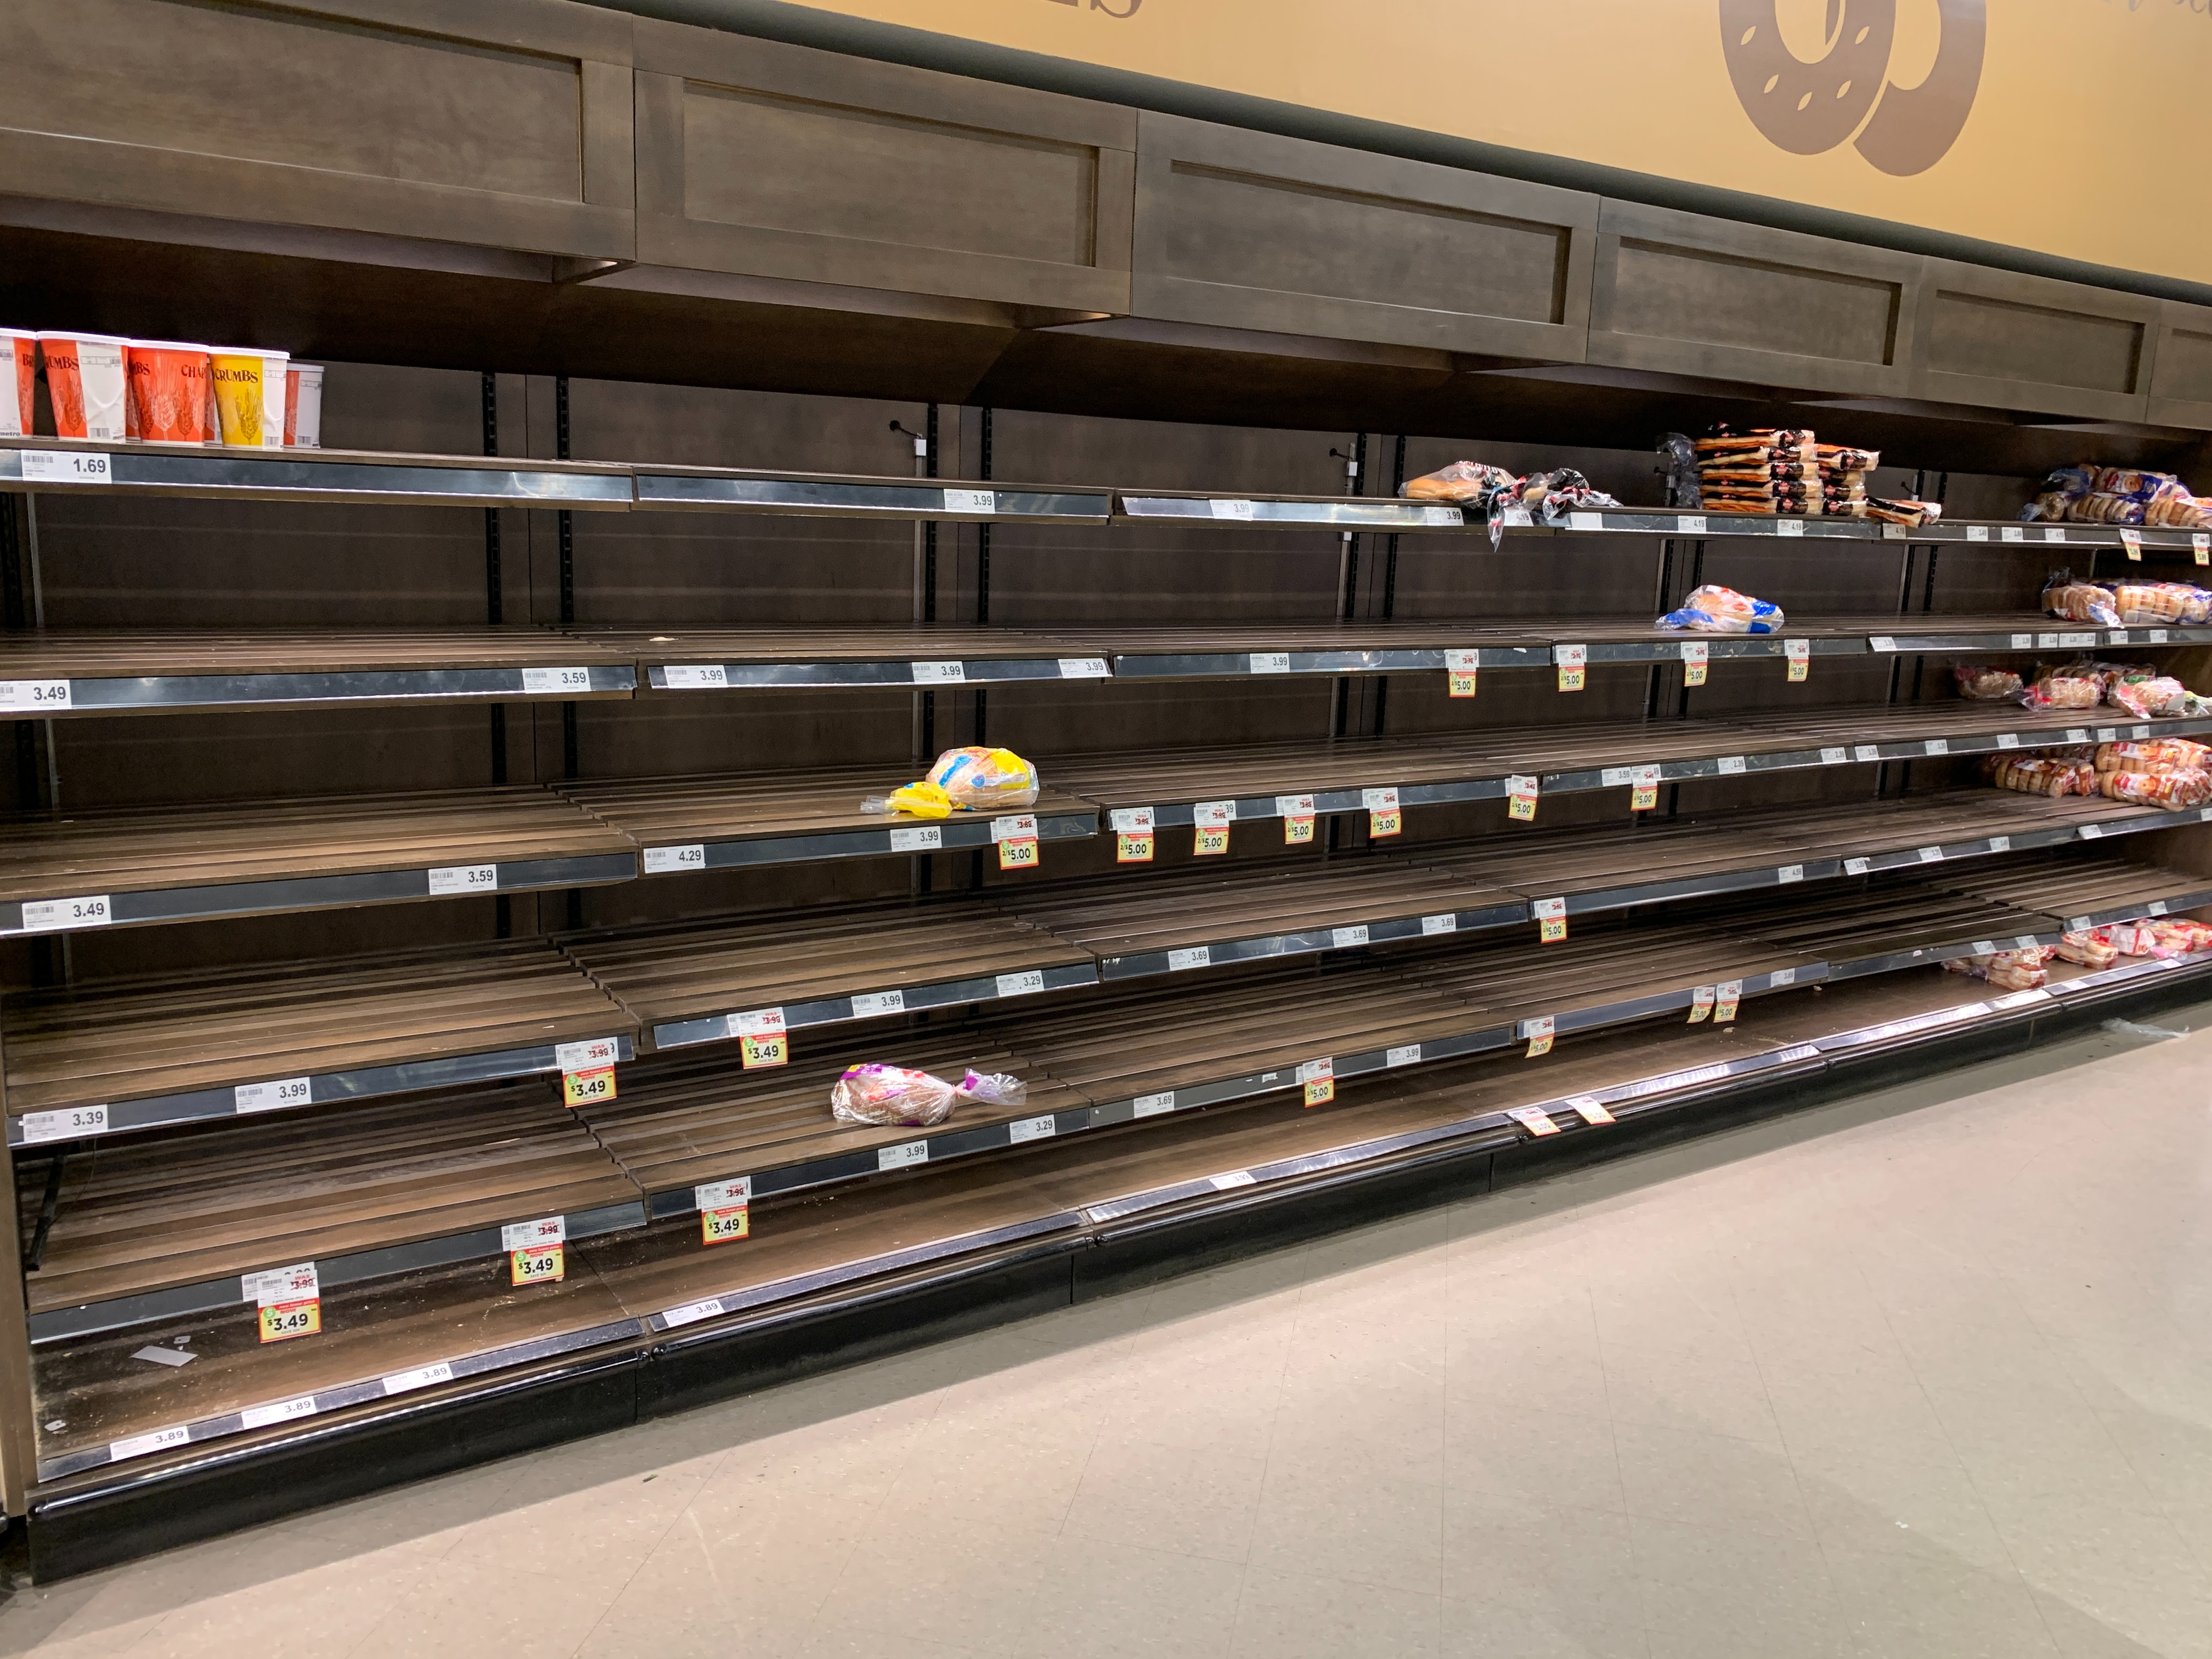 Shelves across the country have been picked clean by consumers in preparation for social distancing